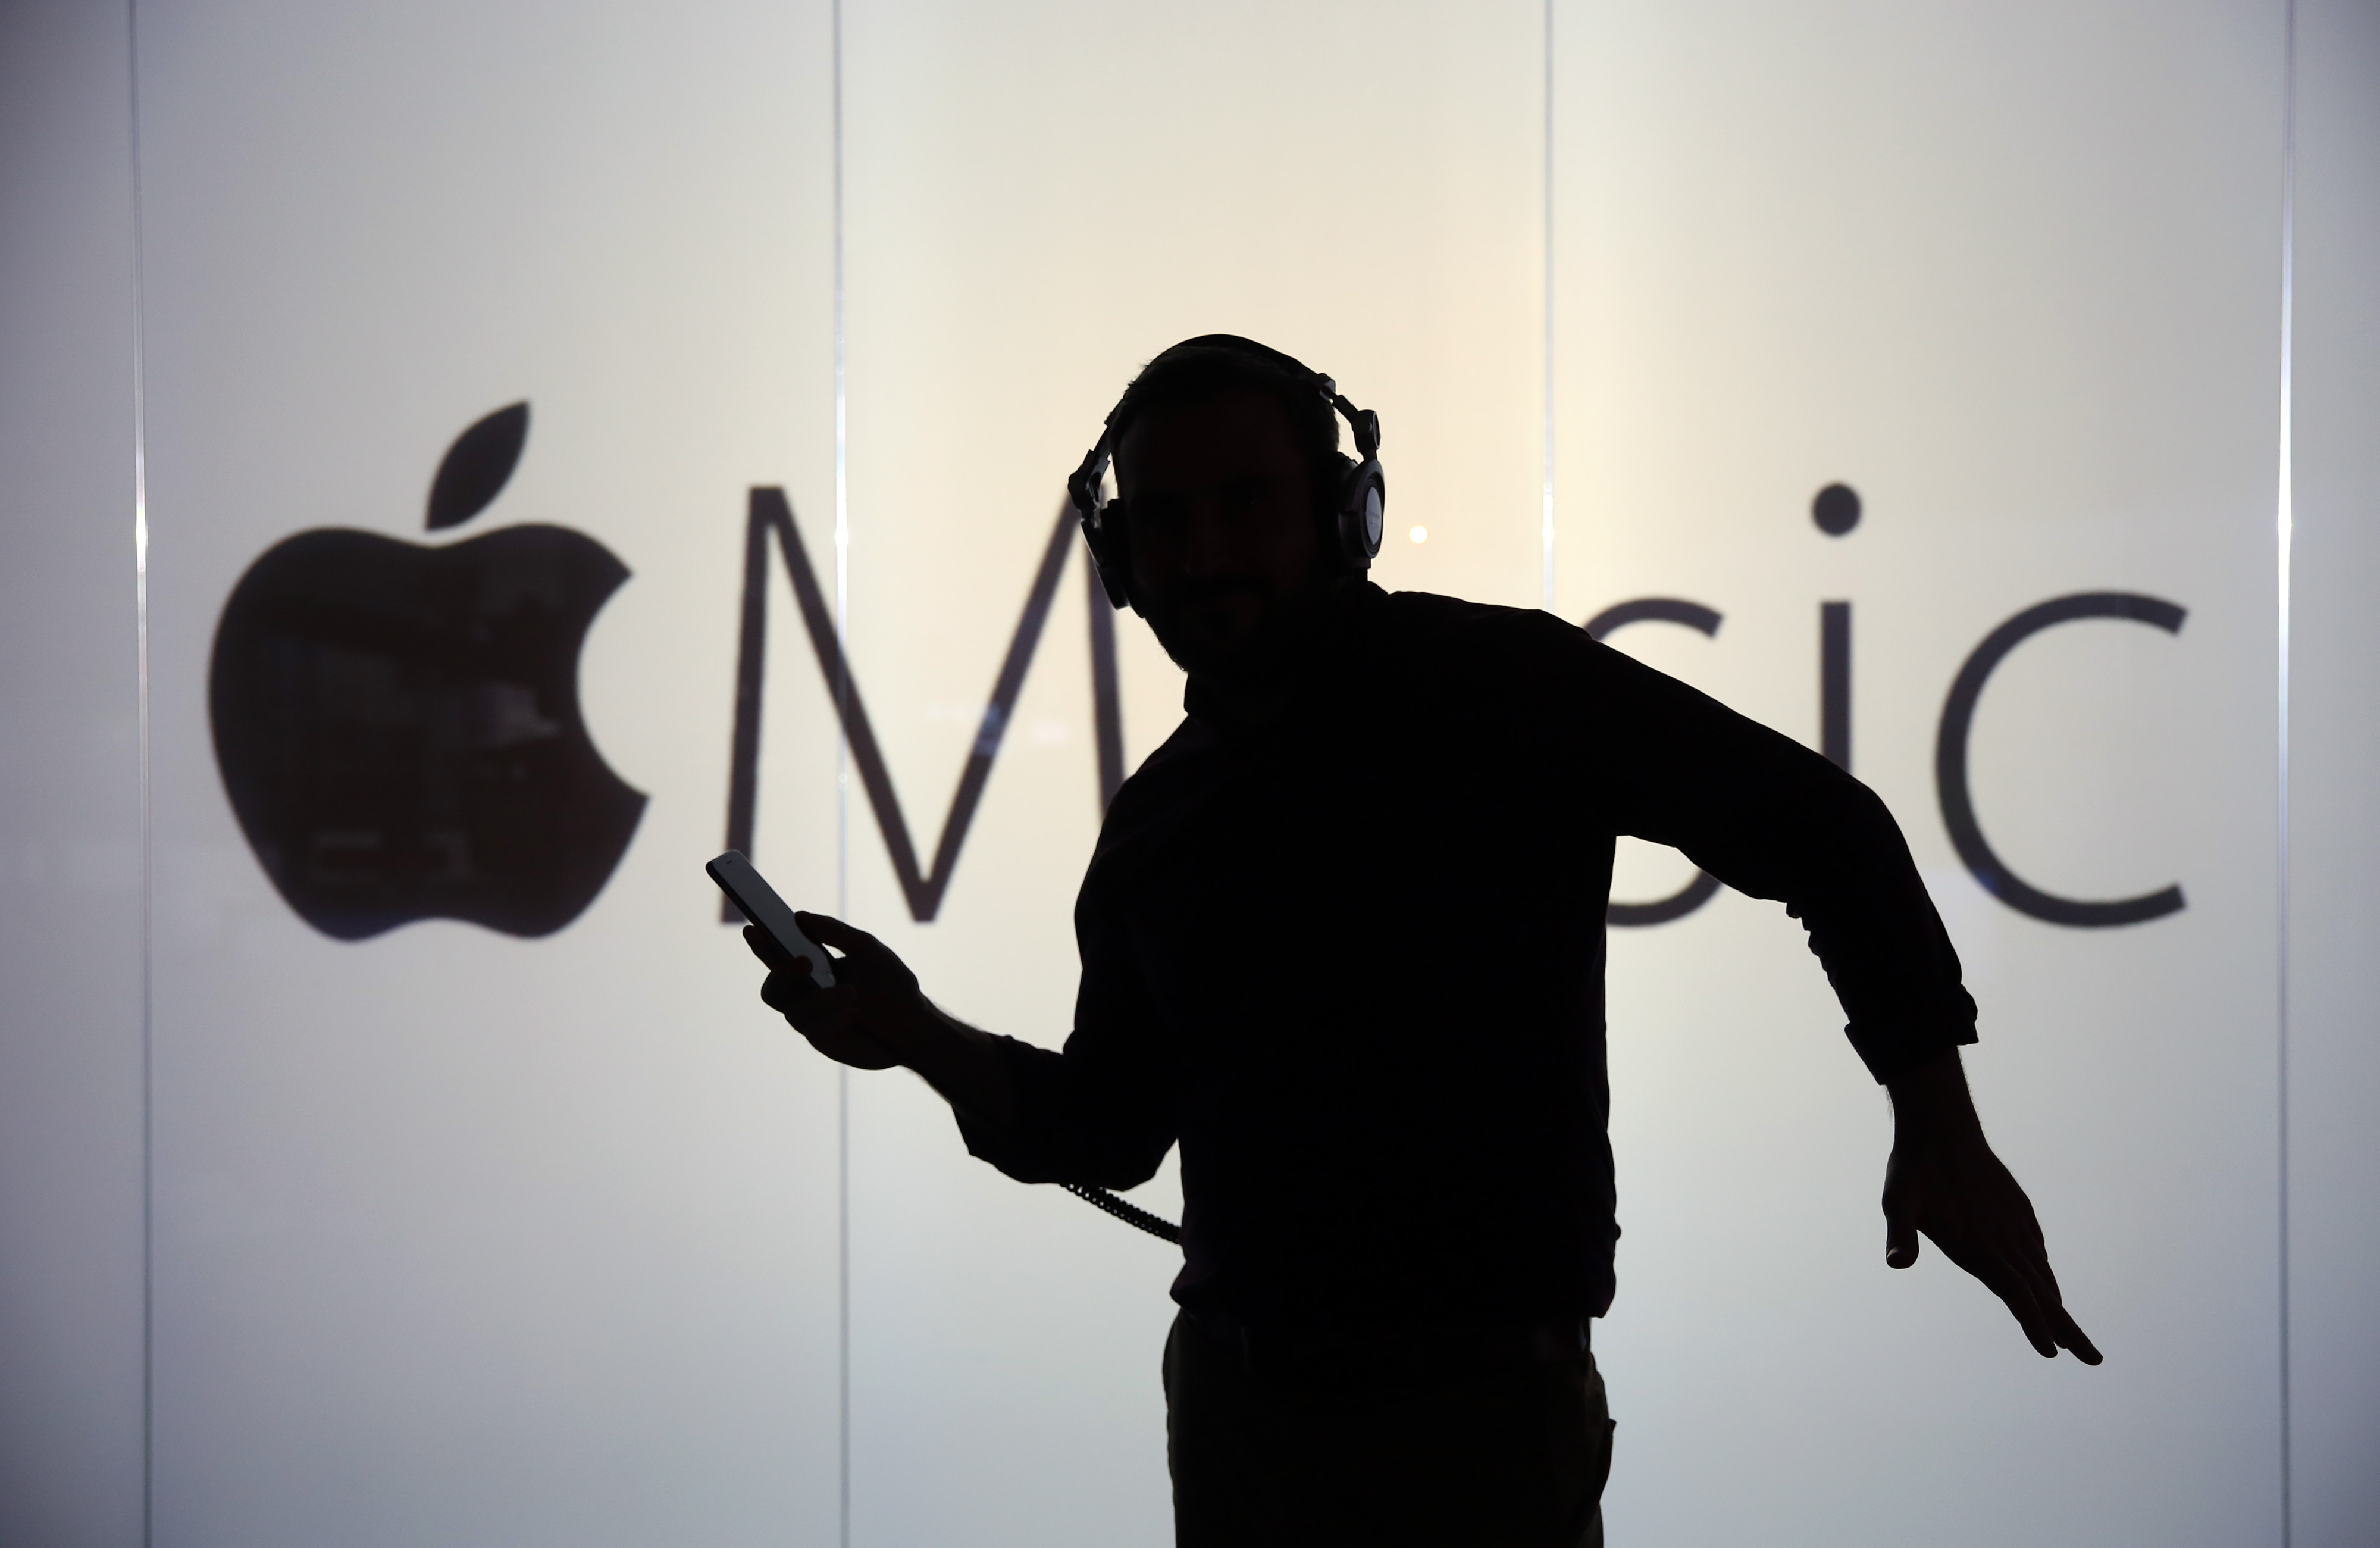 A man dances to music being streamed on his Apple Inc. iPhone 6s whilst framed against a wall bearing the Apple music symbol in this arranged photograph in London on Dec. 23, 2015.